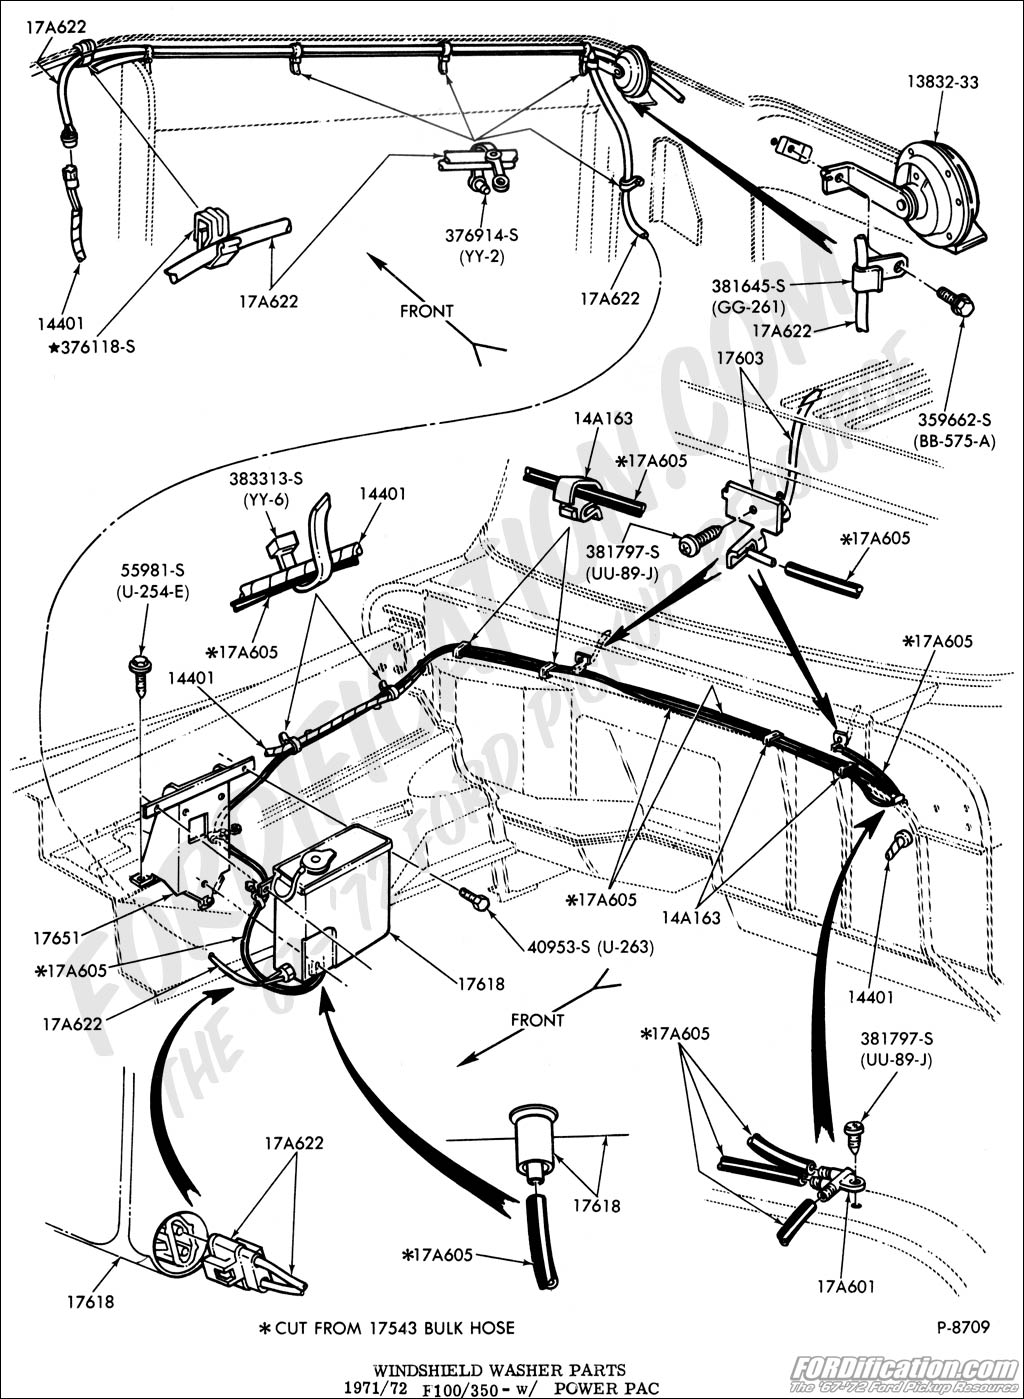 windshieldwshr pwrpak 2001 ford f250 wiring diagram 2001 ford f250 wiring diagram for 2008 F 350 Trailer Wiring Diagrams at bayanpartner.co